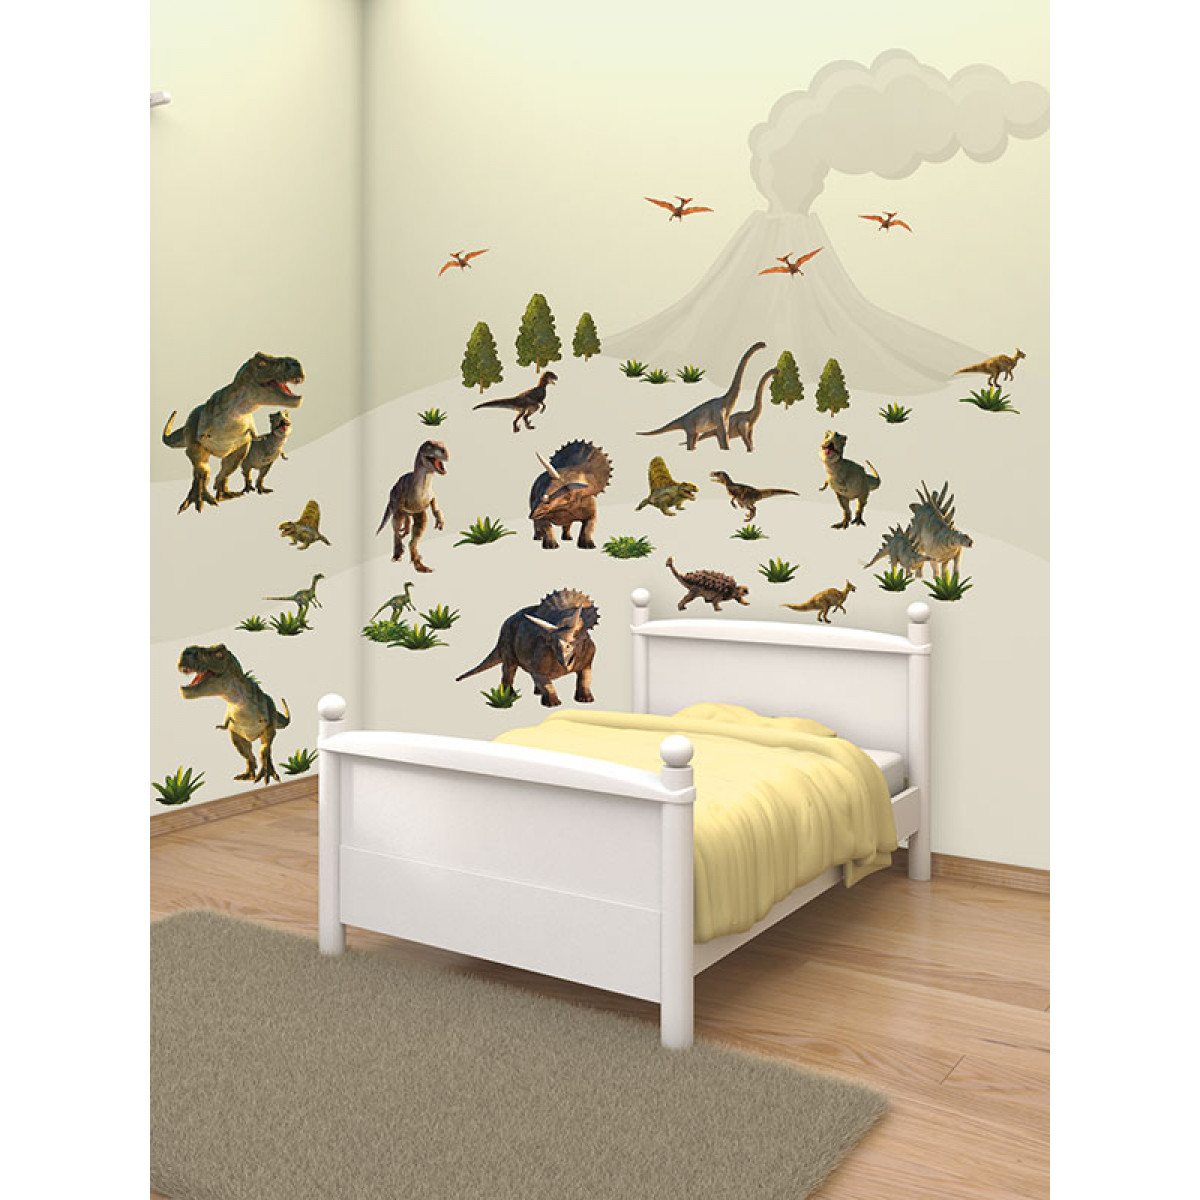 Walltastic dinosaur land room decor wall sticker kit bedroom for Dinosaur mural kit